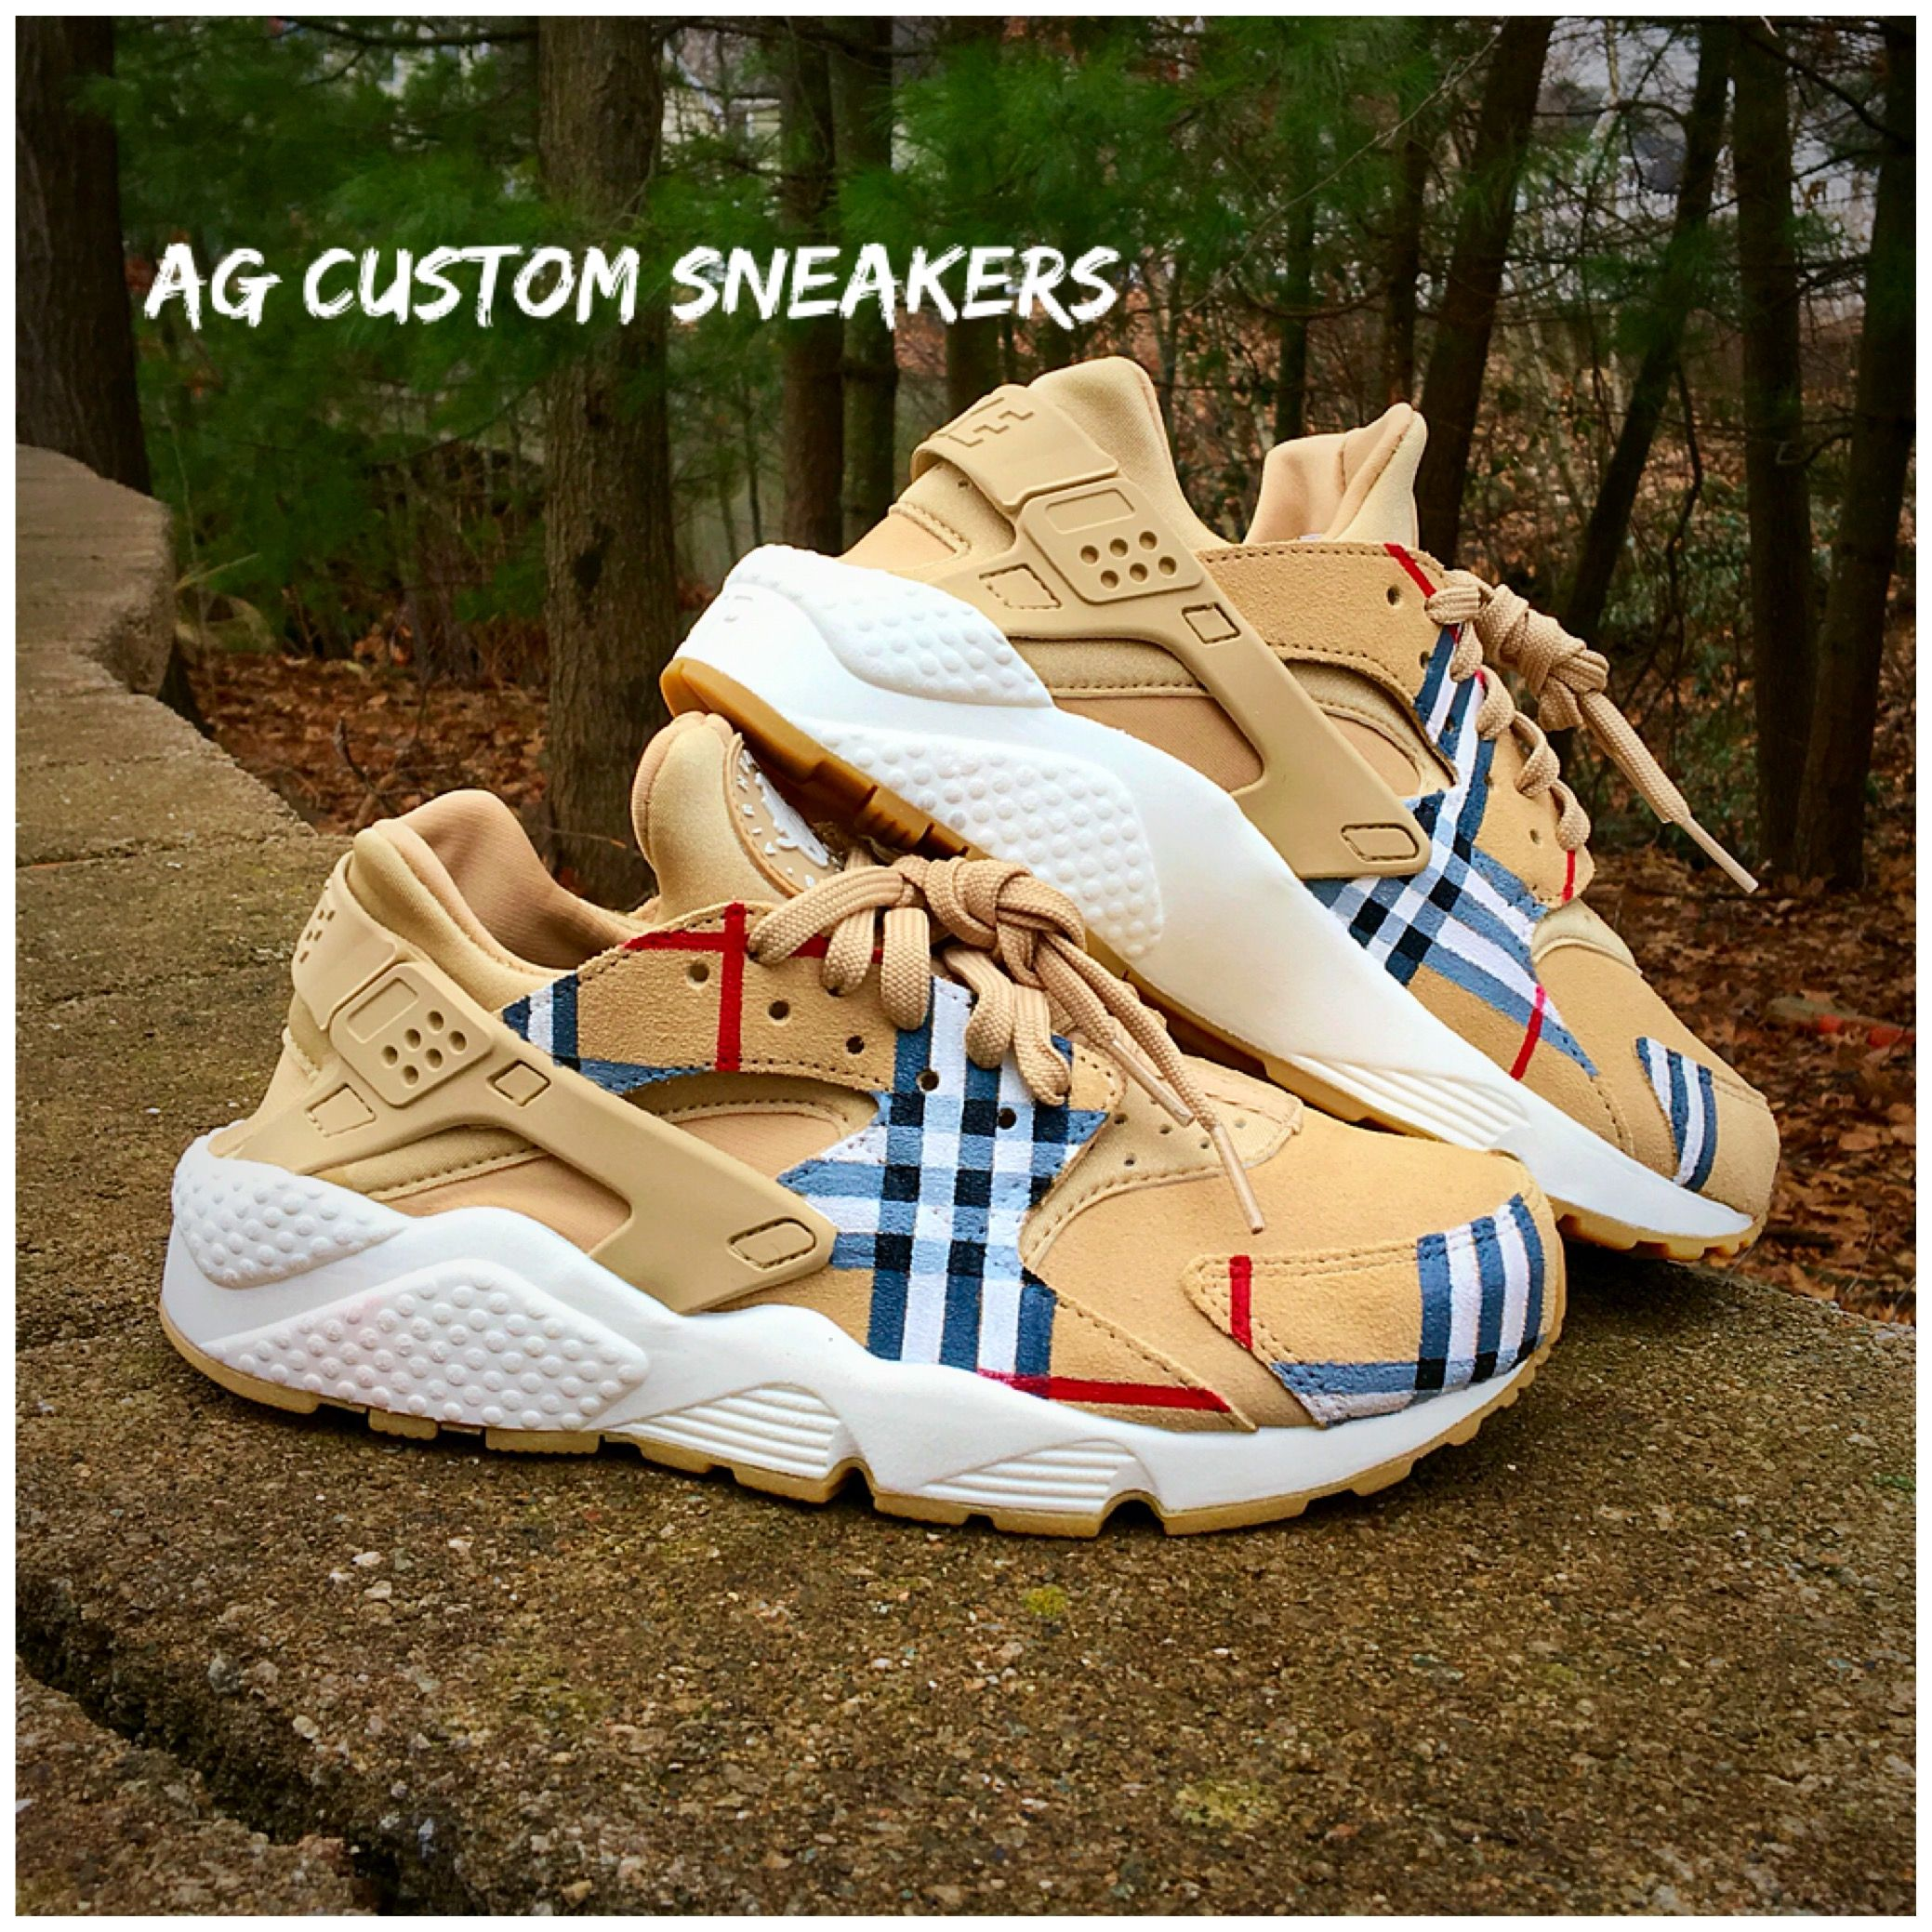 1d52df1a815c Nike Huarache · Burberry Custom Sneakers by AG Custom Sneakers https   www. etsy.com